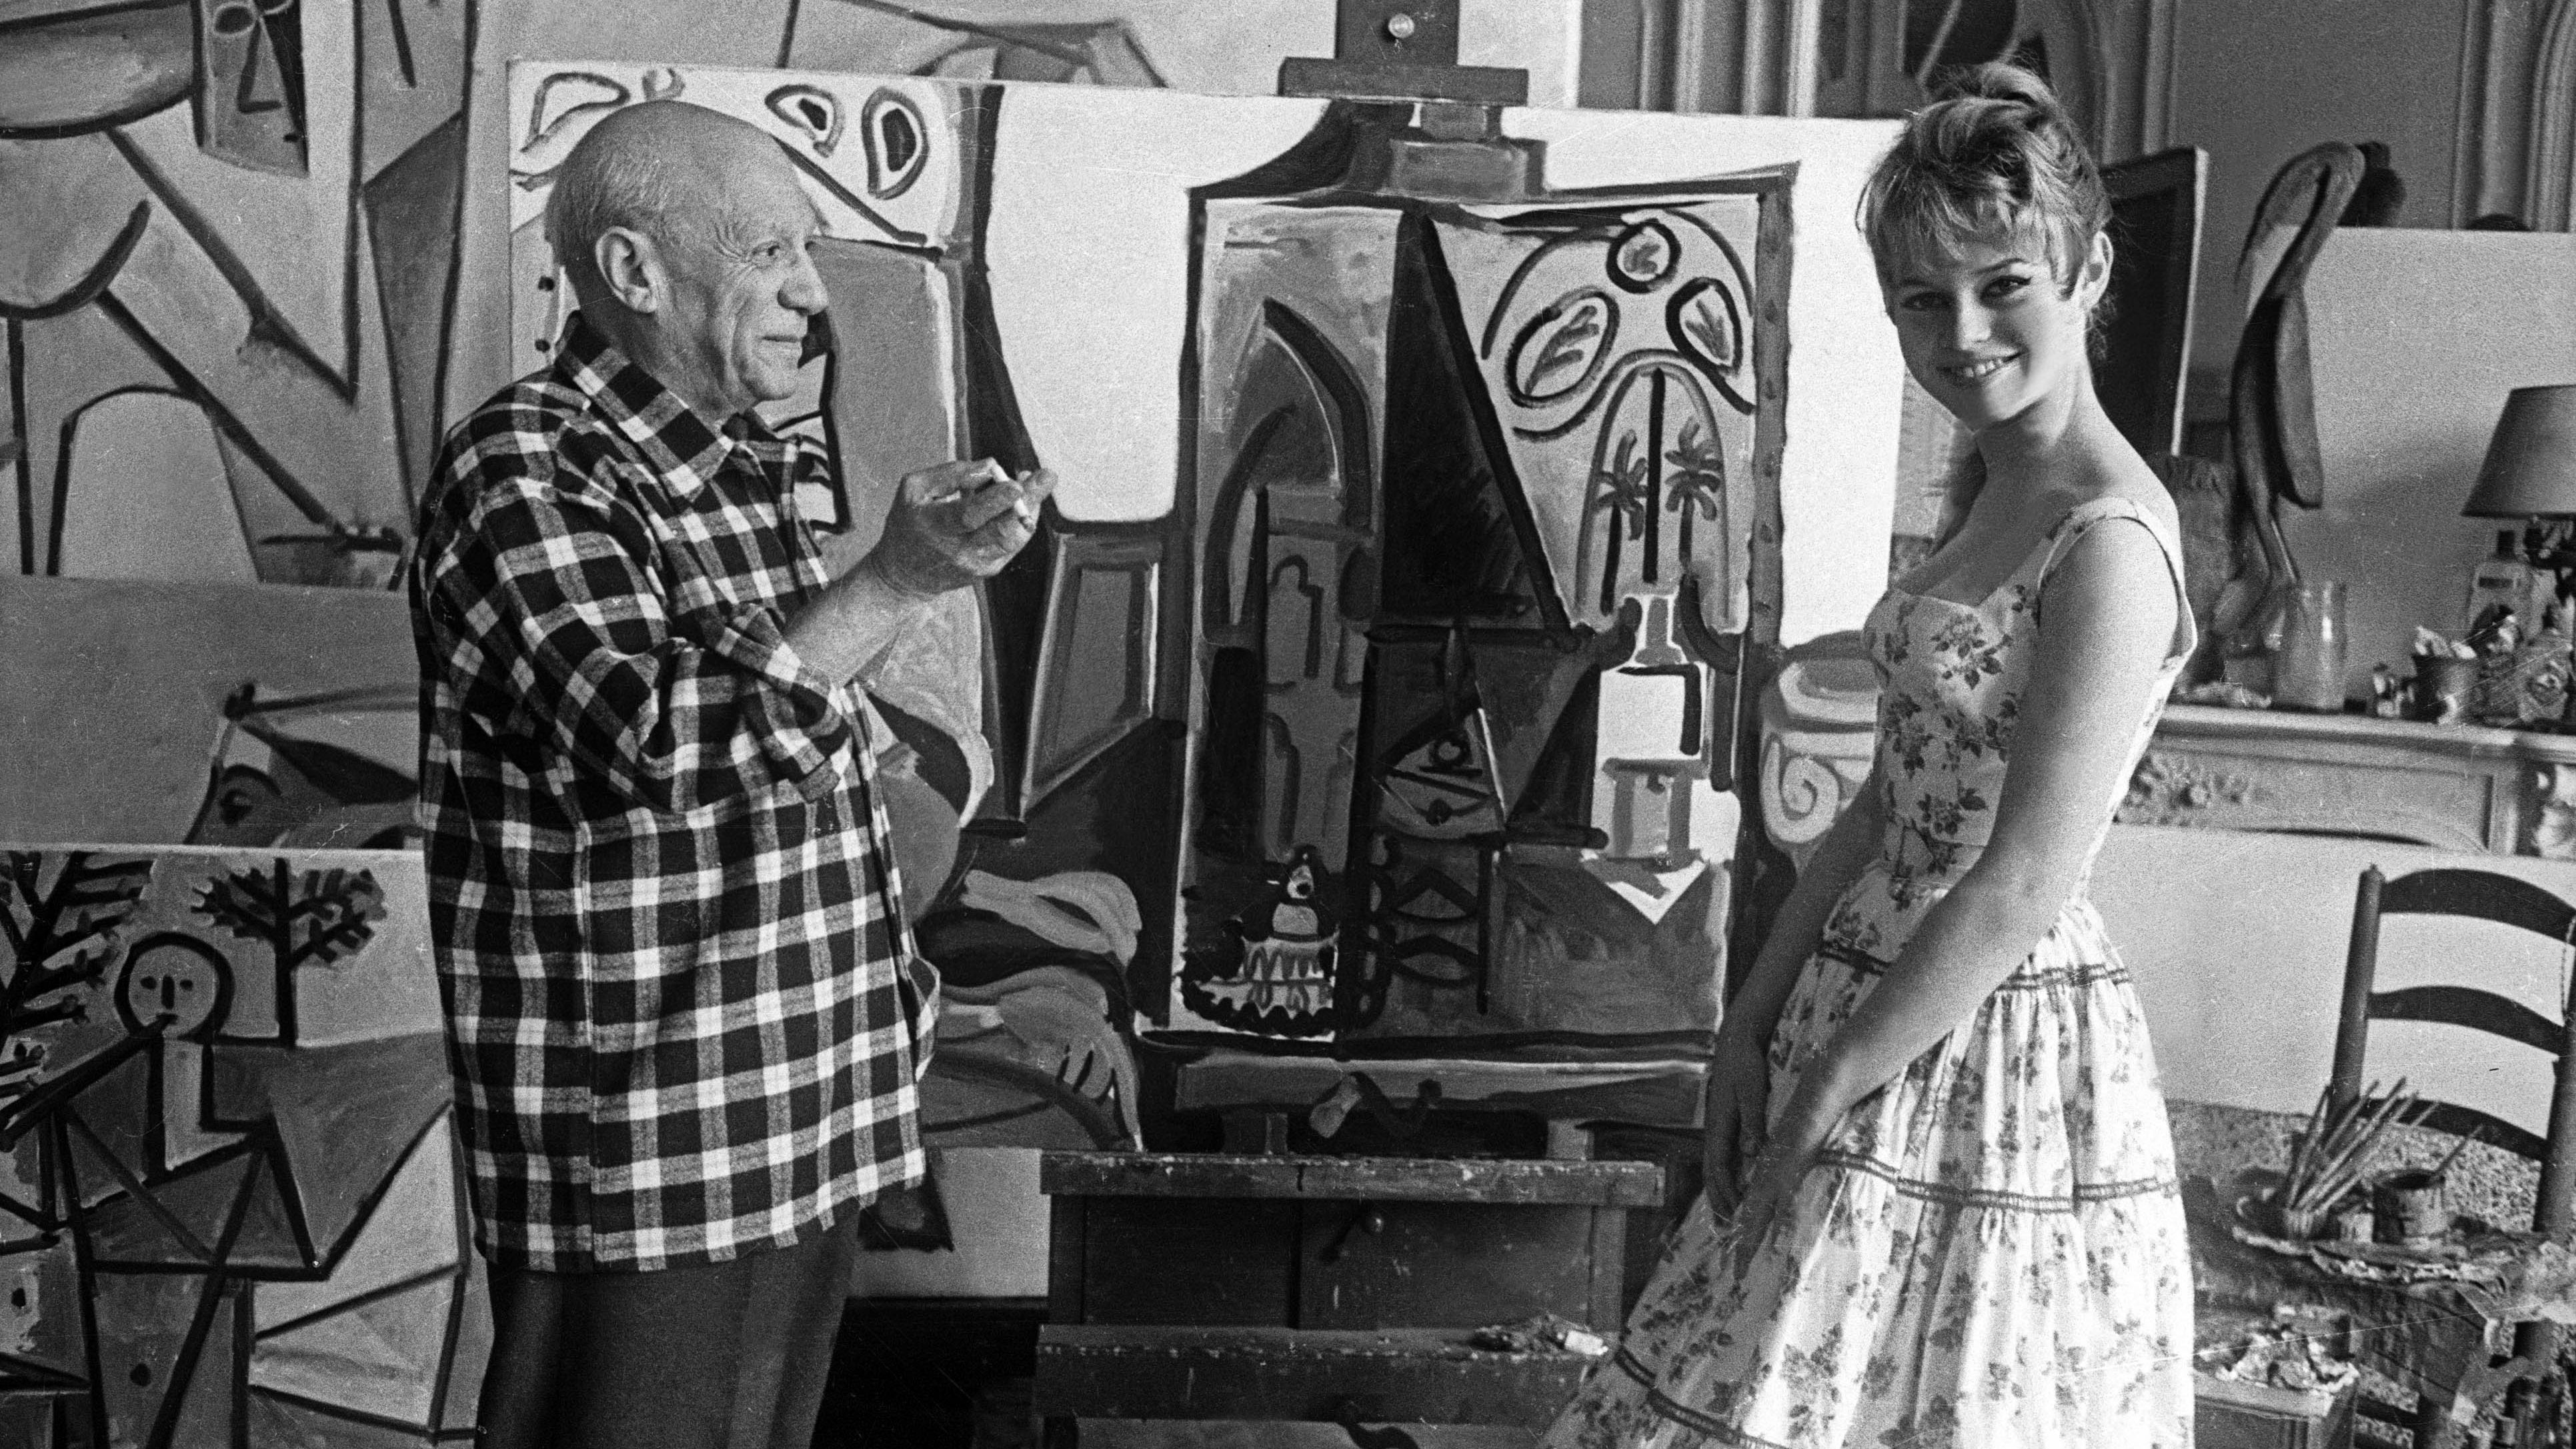 Pablo Picasso's Women: Wives, Lovers, and Muses